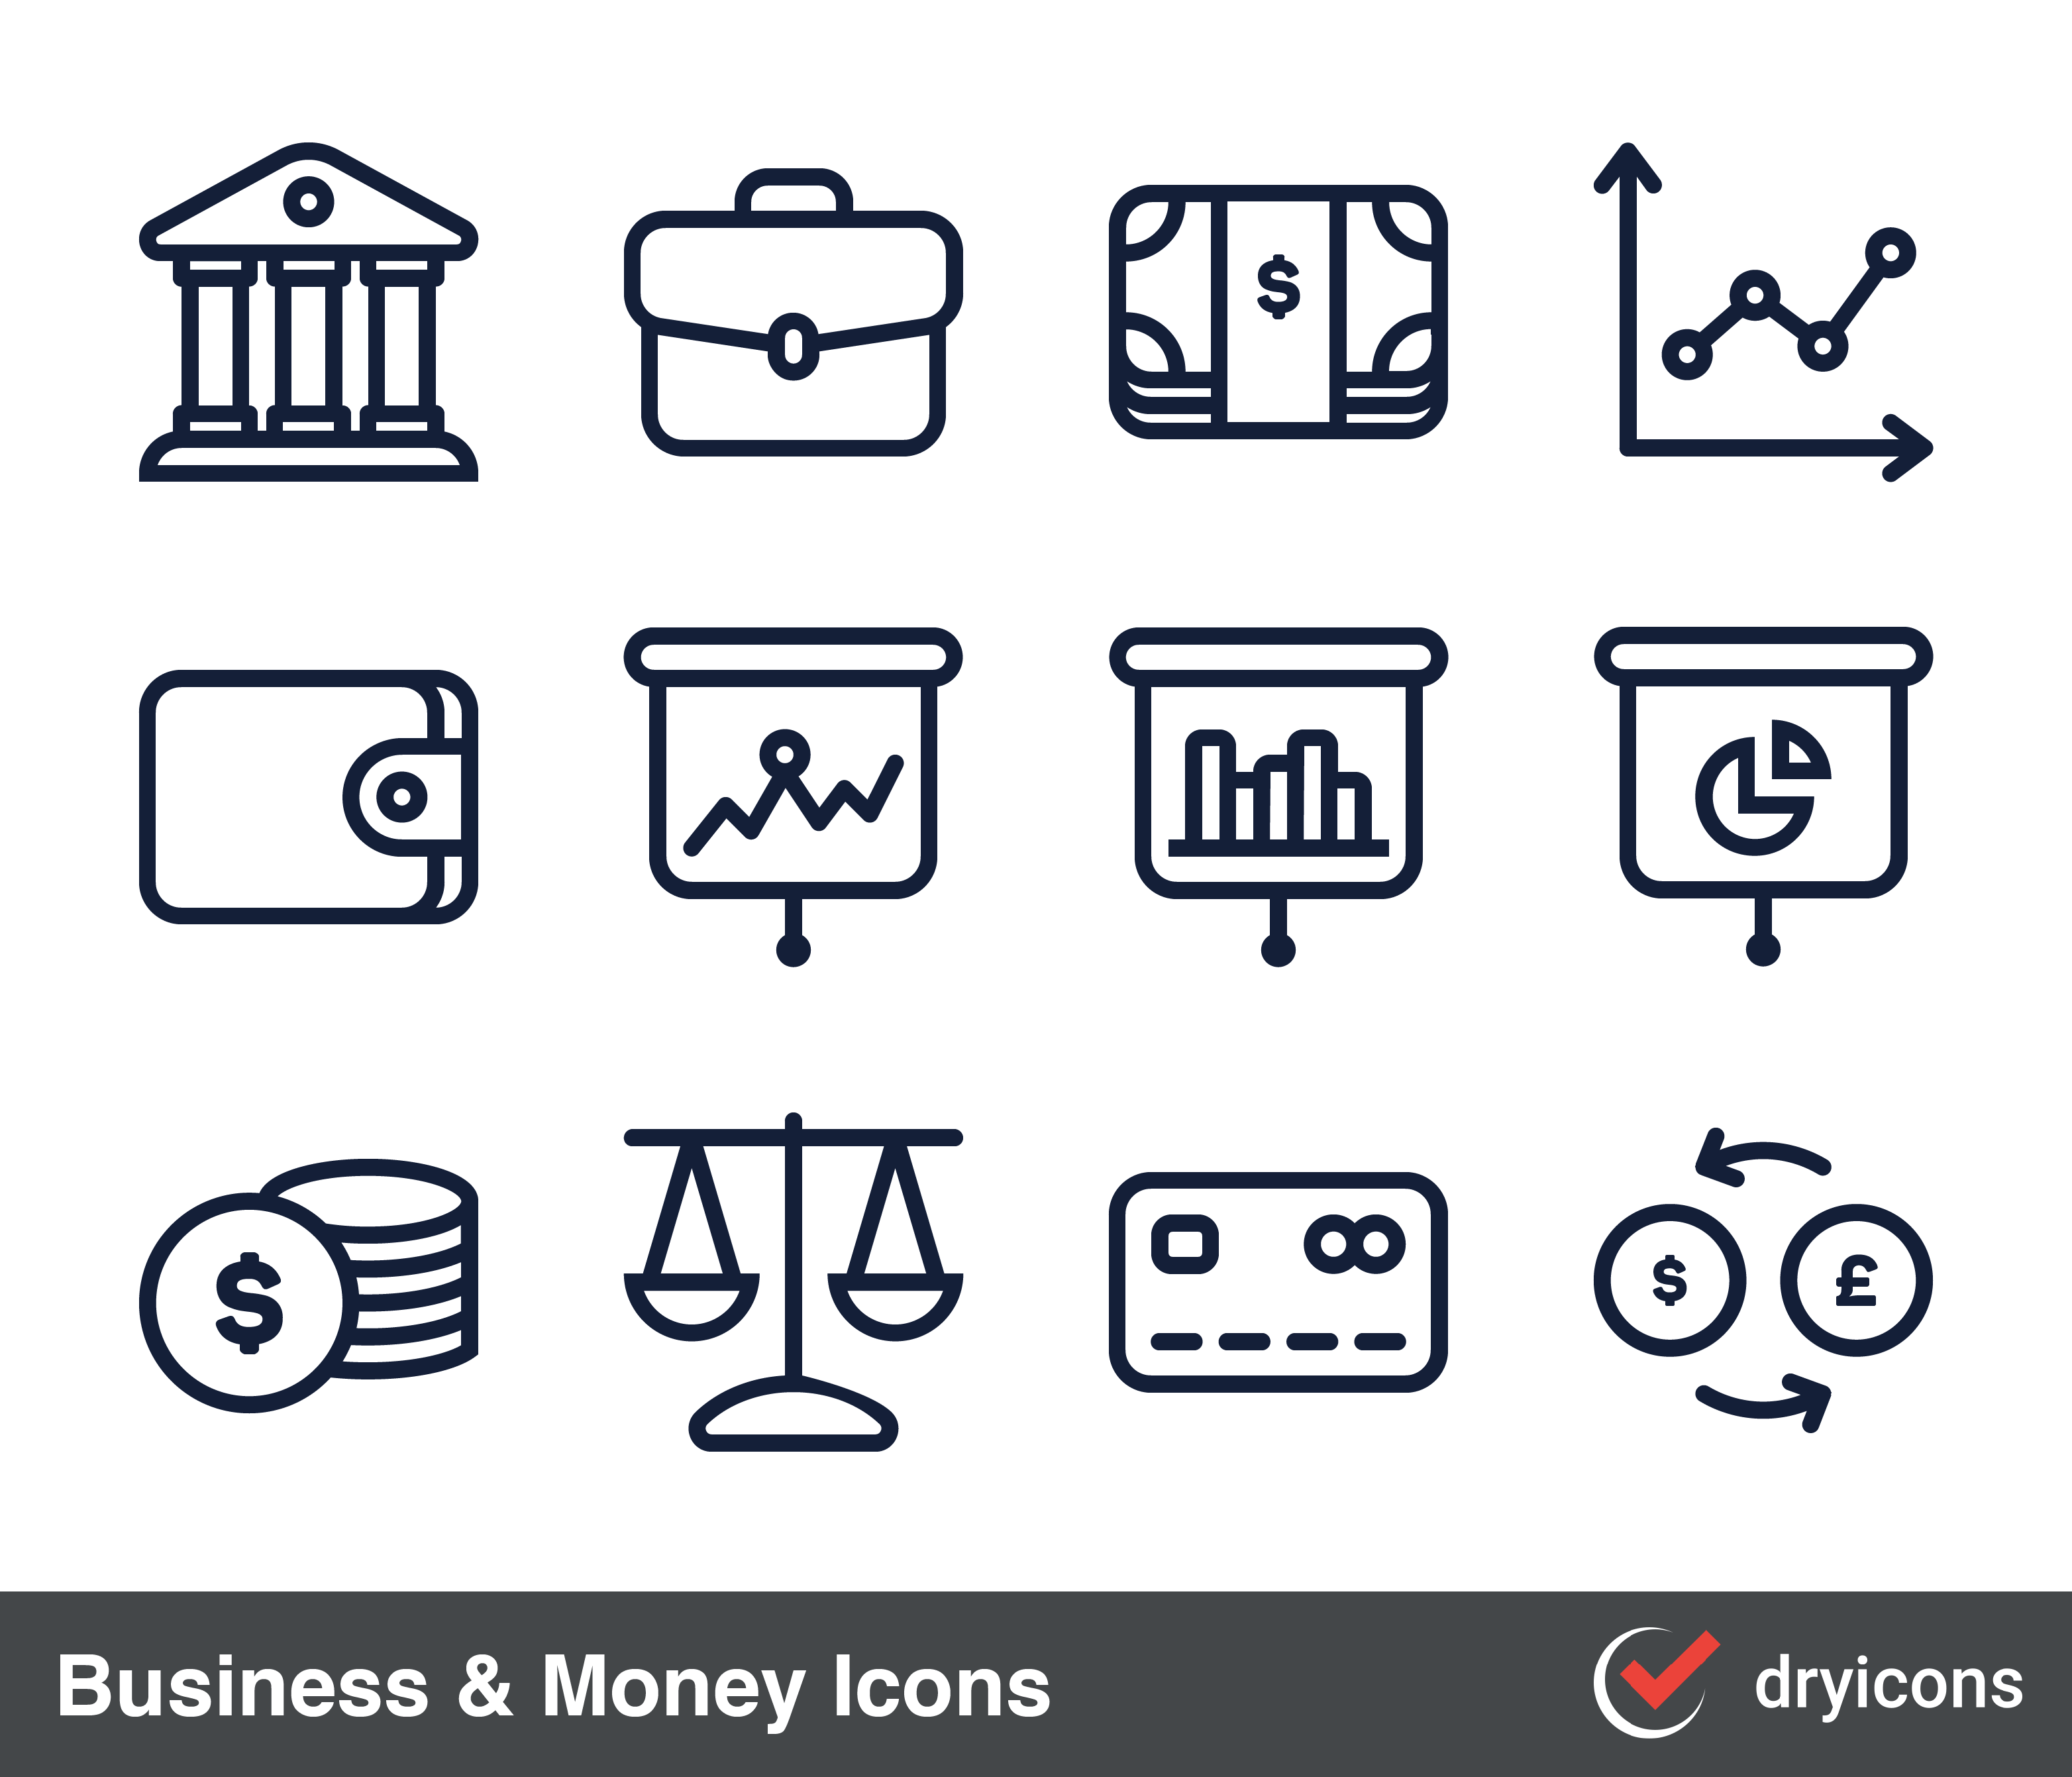 Free cute tax time icons vector clipart green jpg black and white library DryIcons.com — Icons and Vector Graphics jpg black and white library